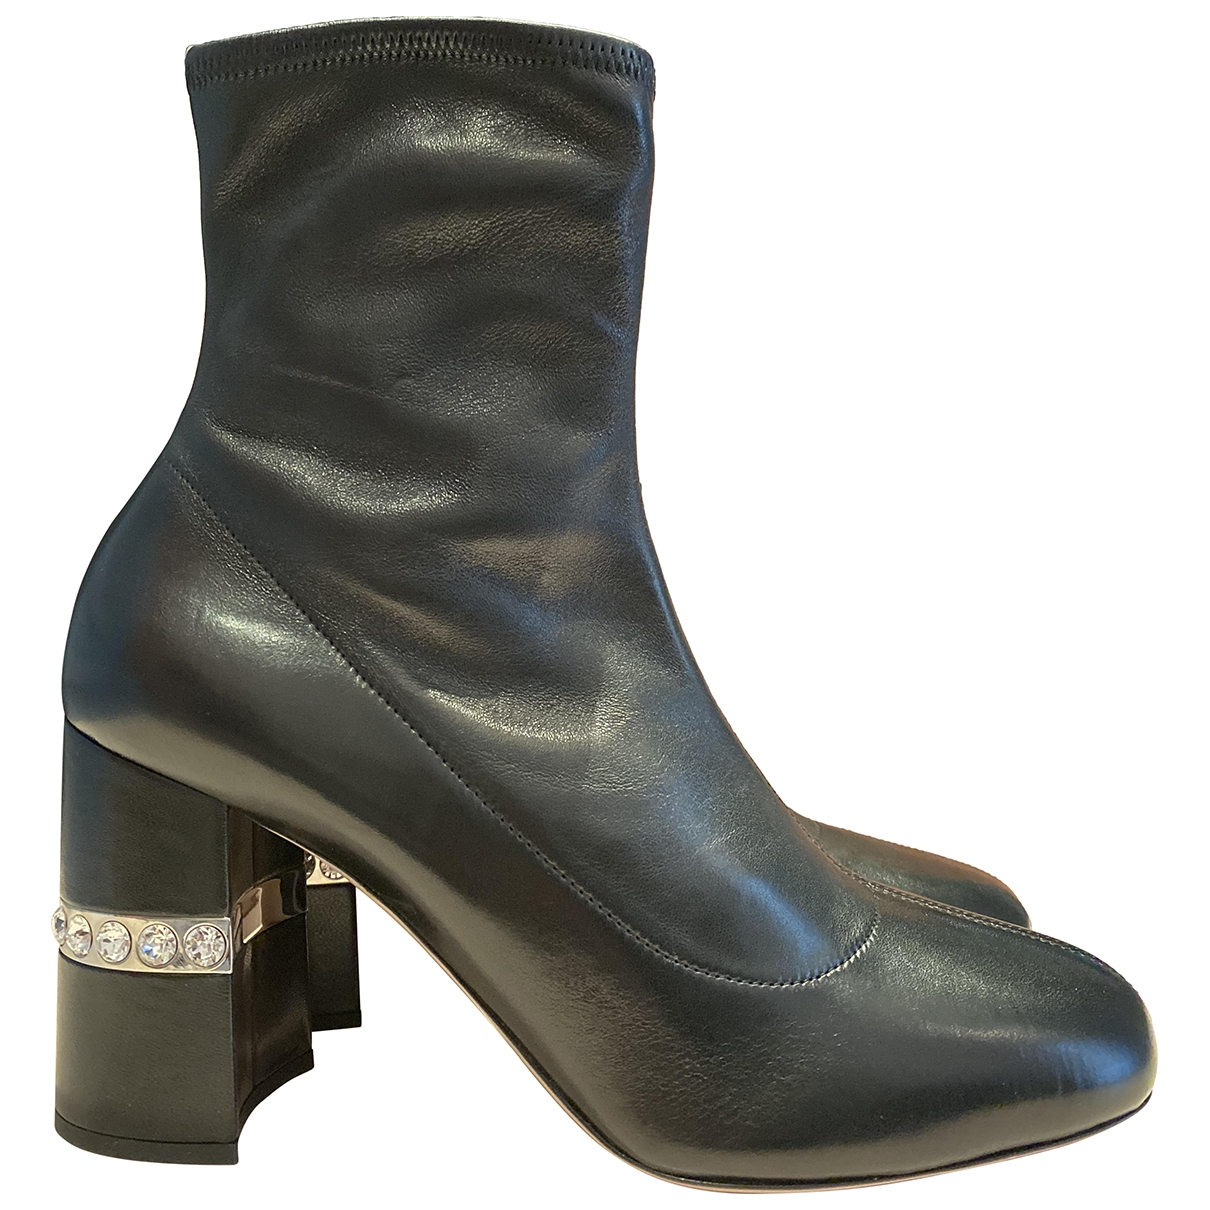 Miu Miu \N Black Leather Ankle boots for Women 38 IT